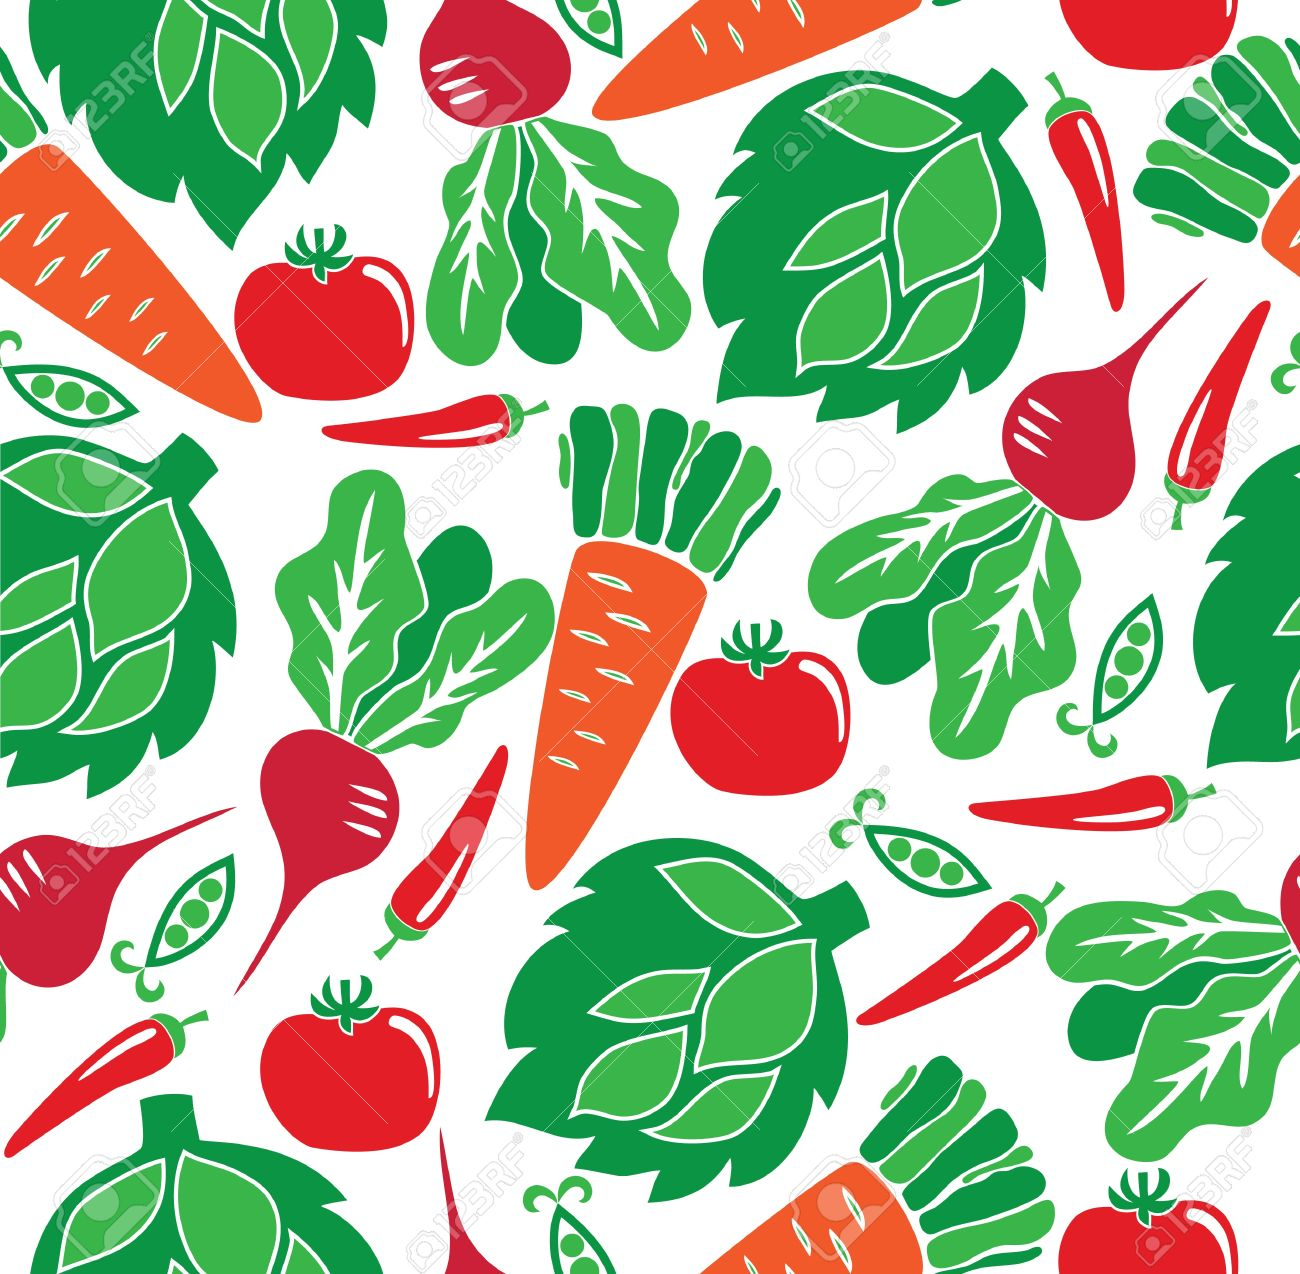 Vegetable garden graphic - Vector Vegetable Seamless Pattern Vector Illustration